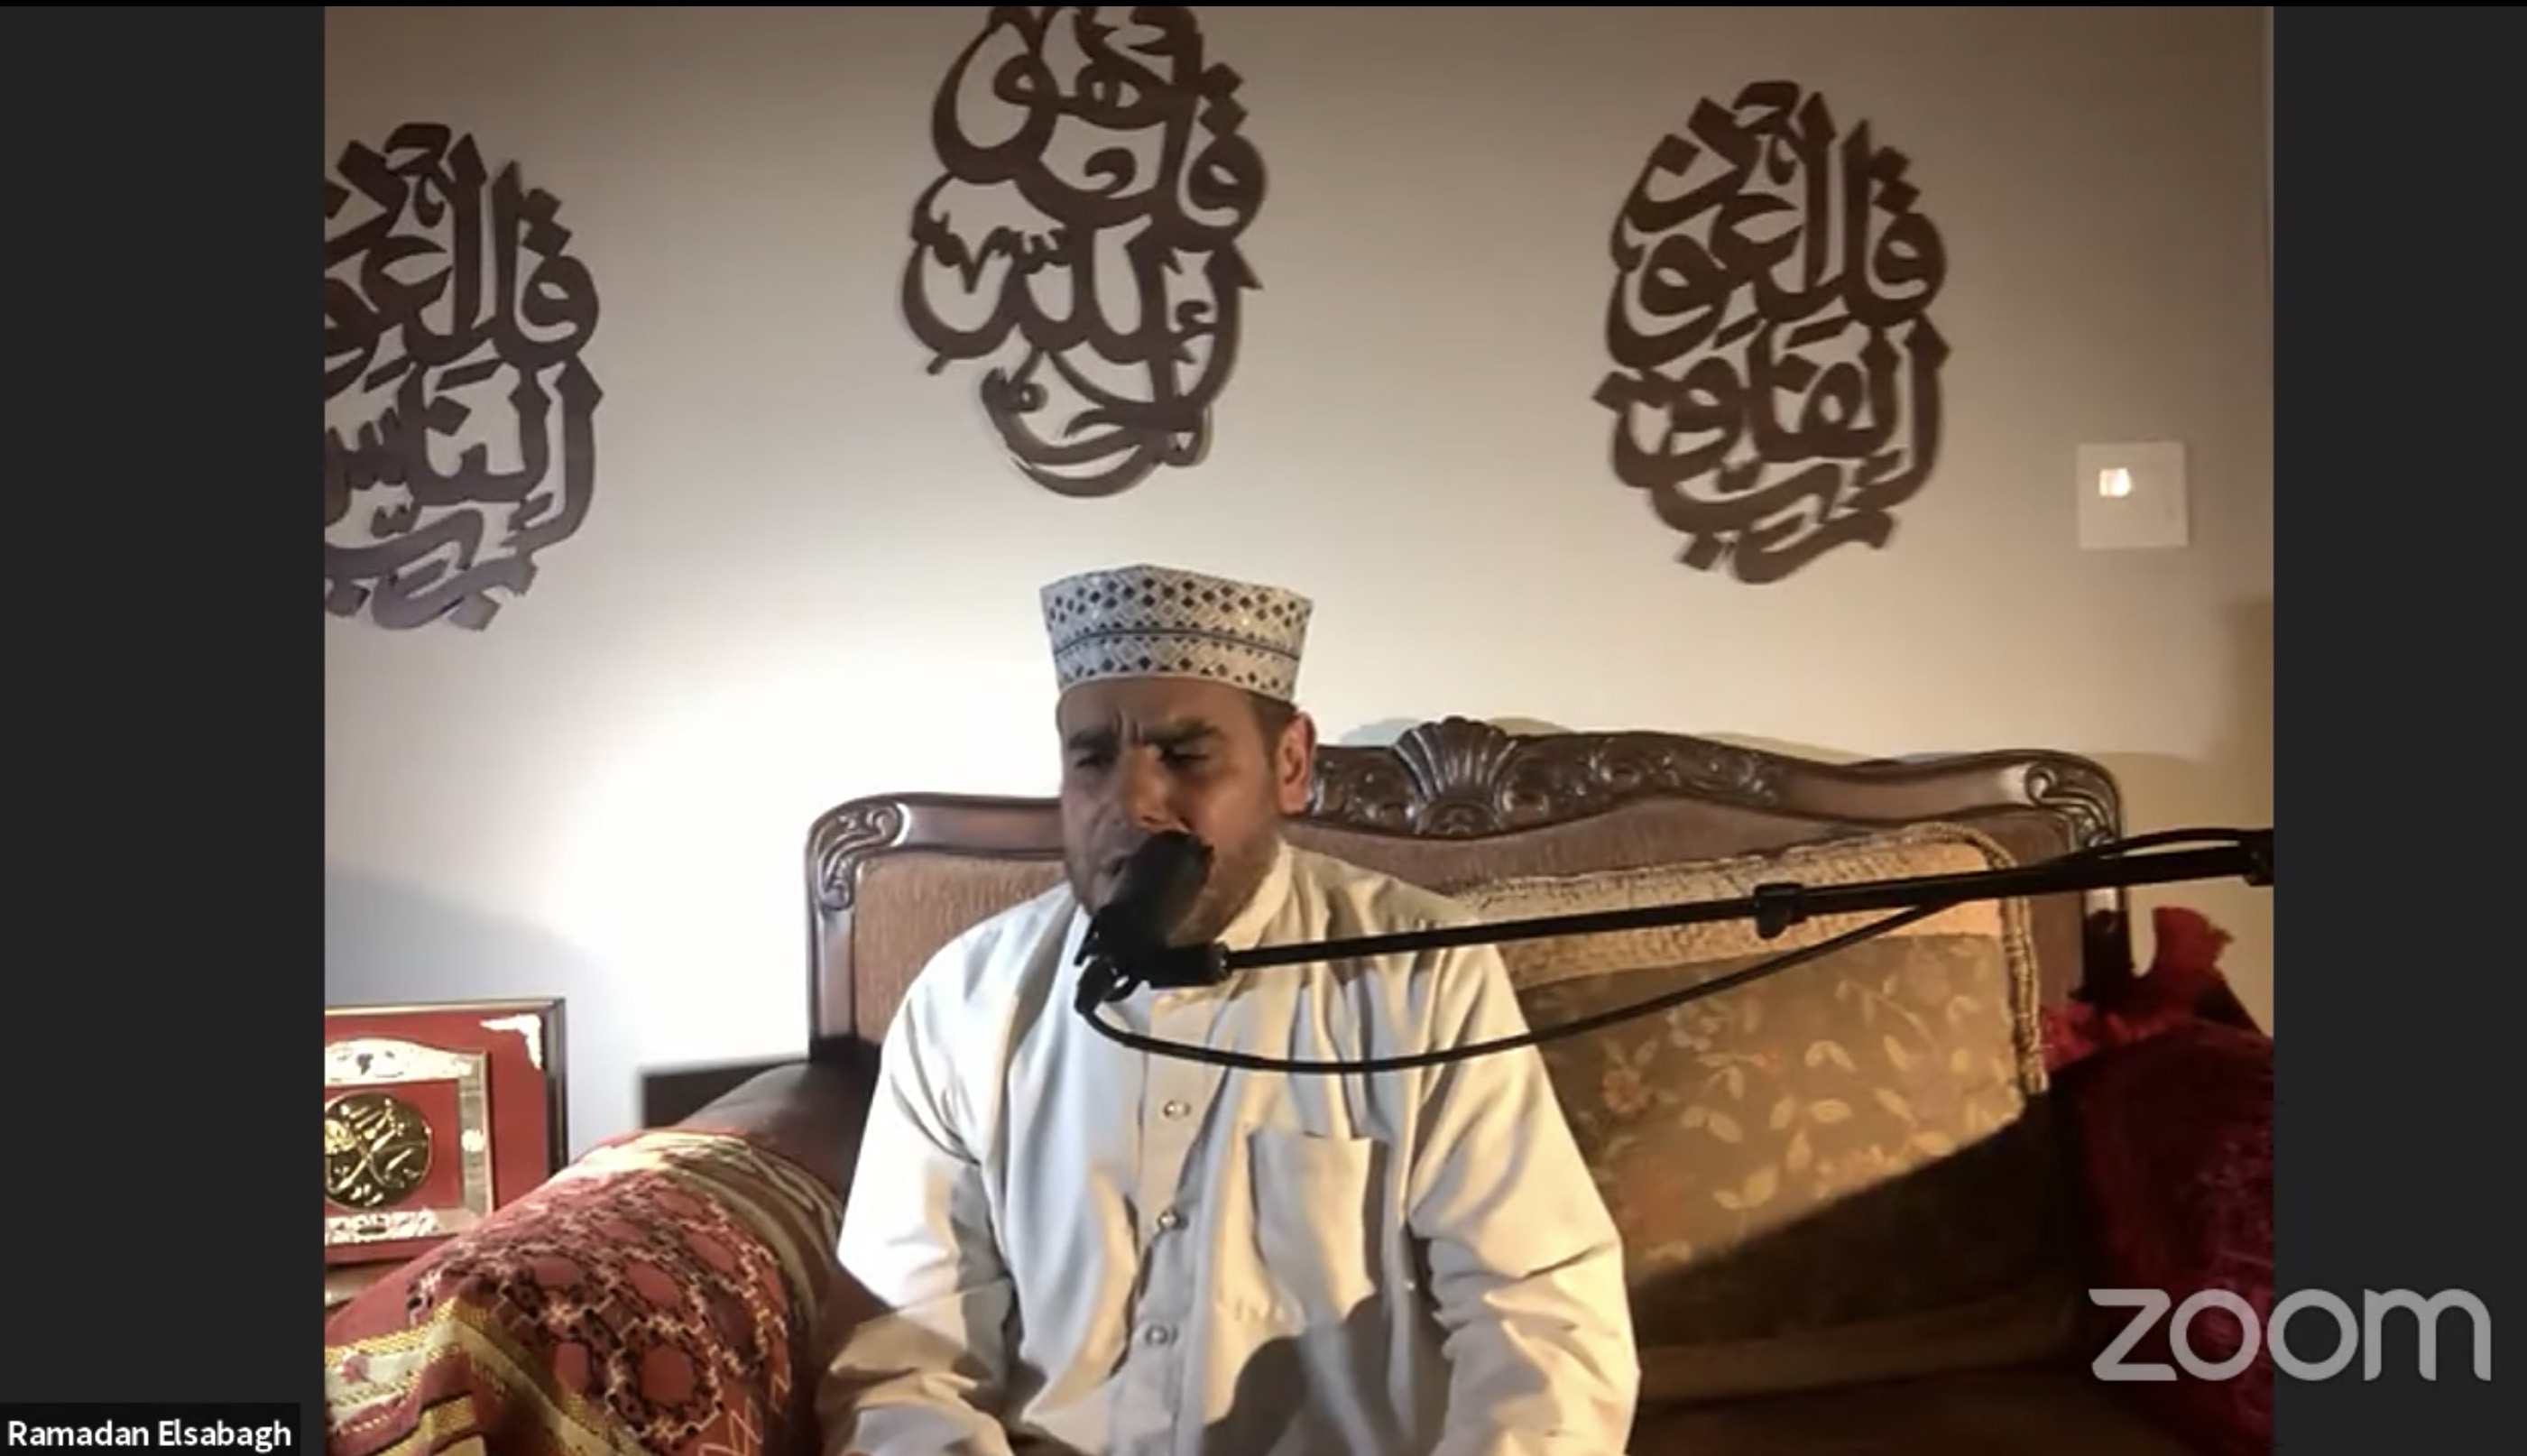 An Imam recites Qur'an while sitting down.